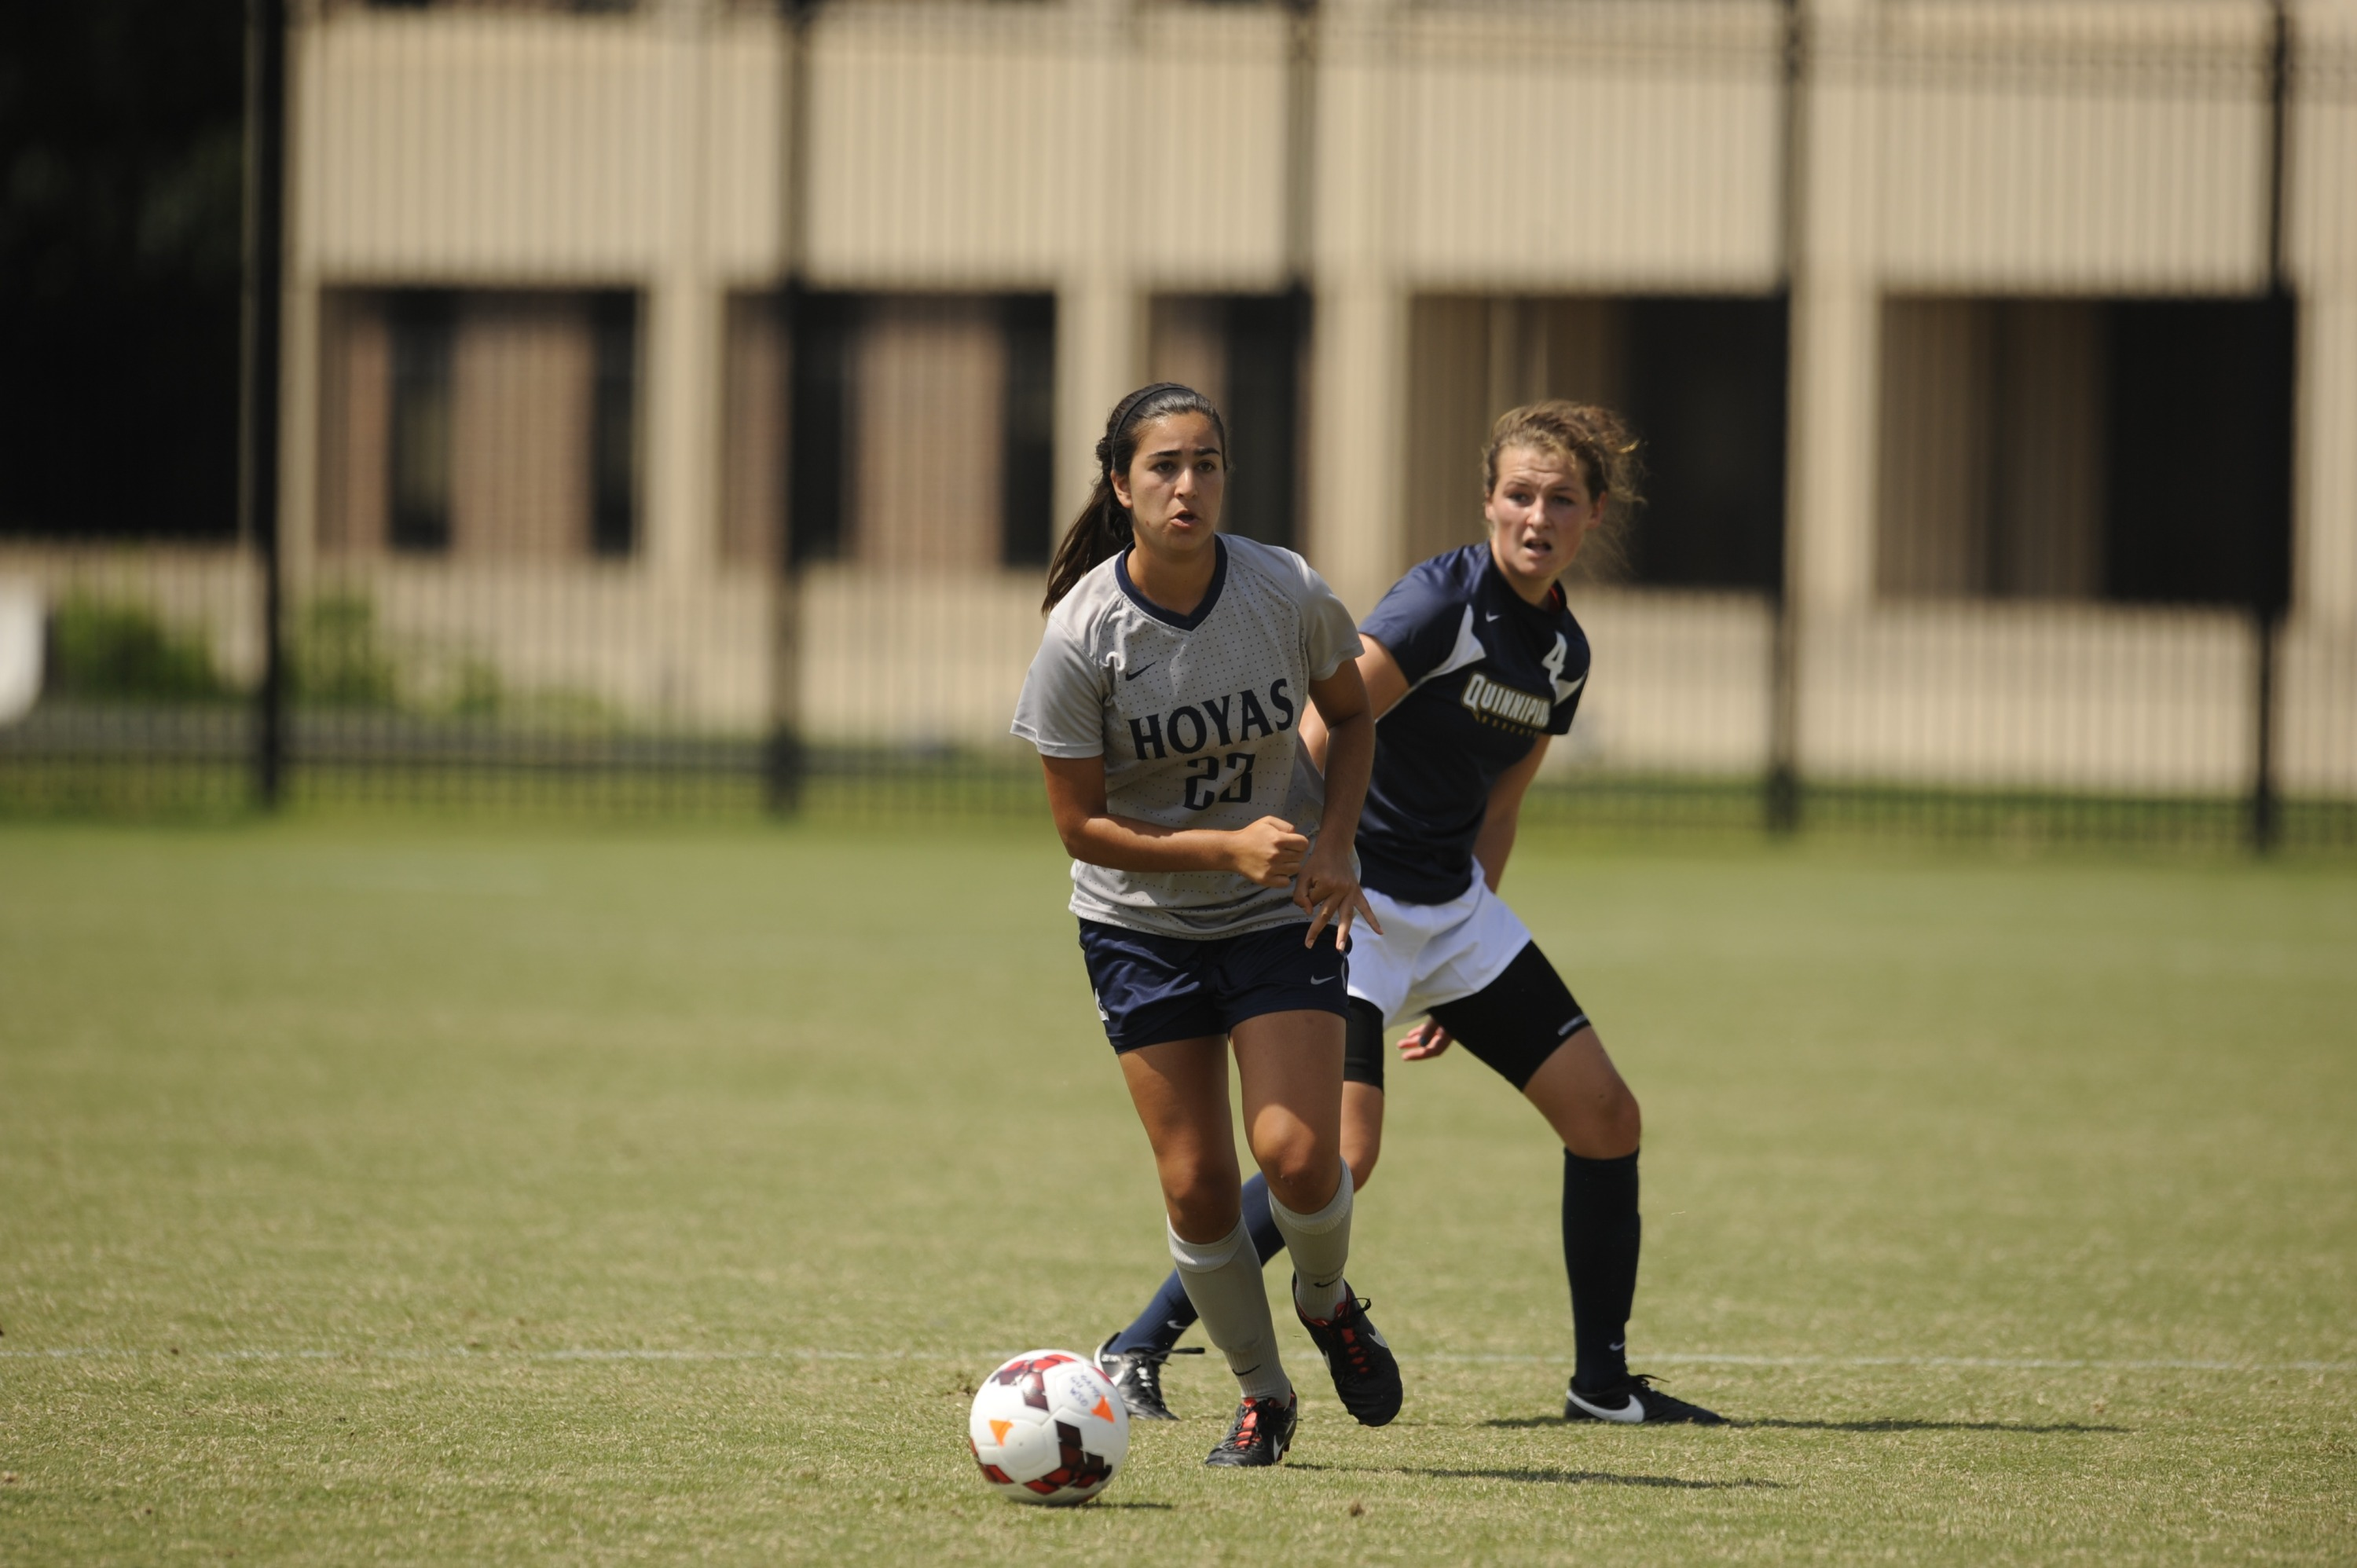 The Georgetown University women's soccer team will host Creighton on Friday, Oct. 30 in the team's last regular season game this year.  Kickoff at Shaw Field is slated for 2:30 p.m.